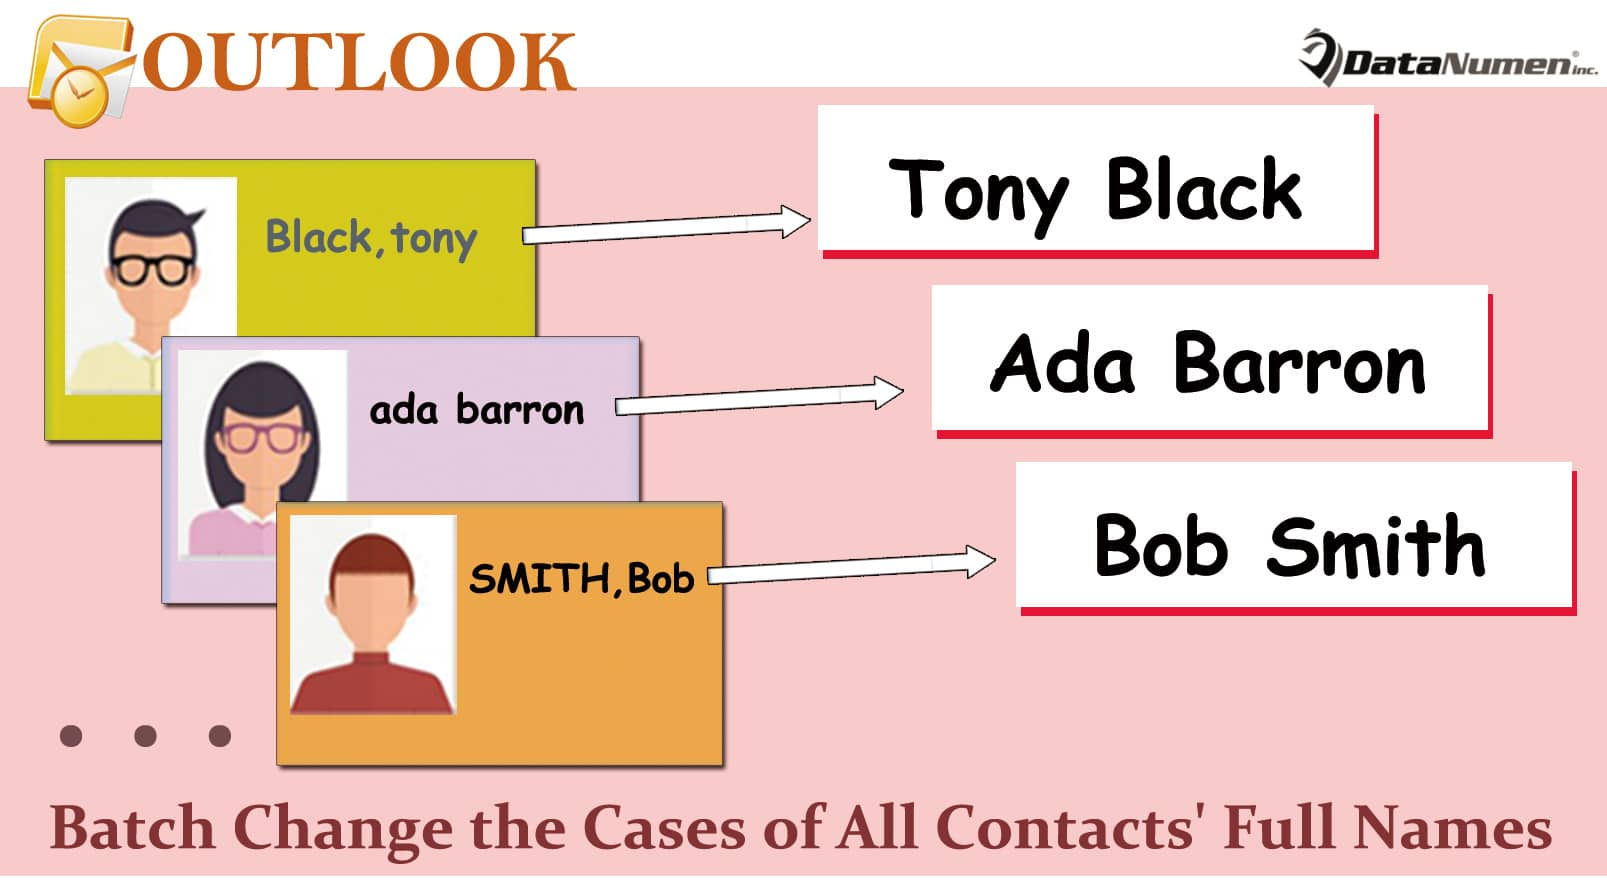 Batch Change the Cases of All Contacts' Full Names in Your Outlook